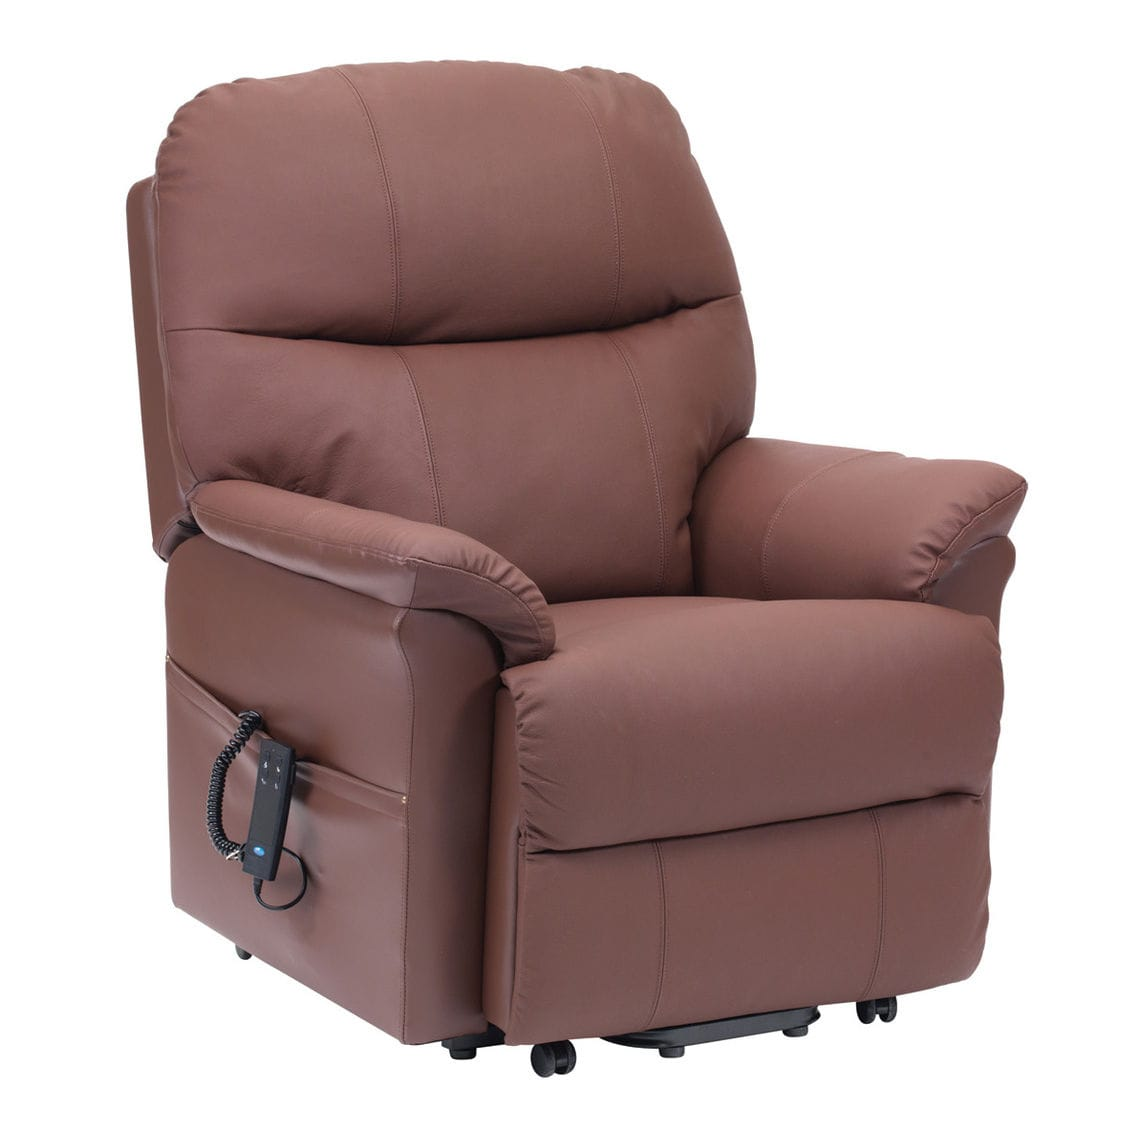 high lift chair steel gaming electric lars drive devilbiss europe